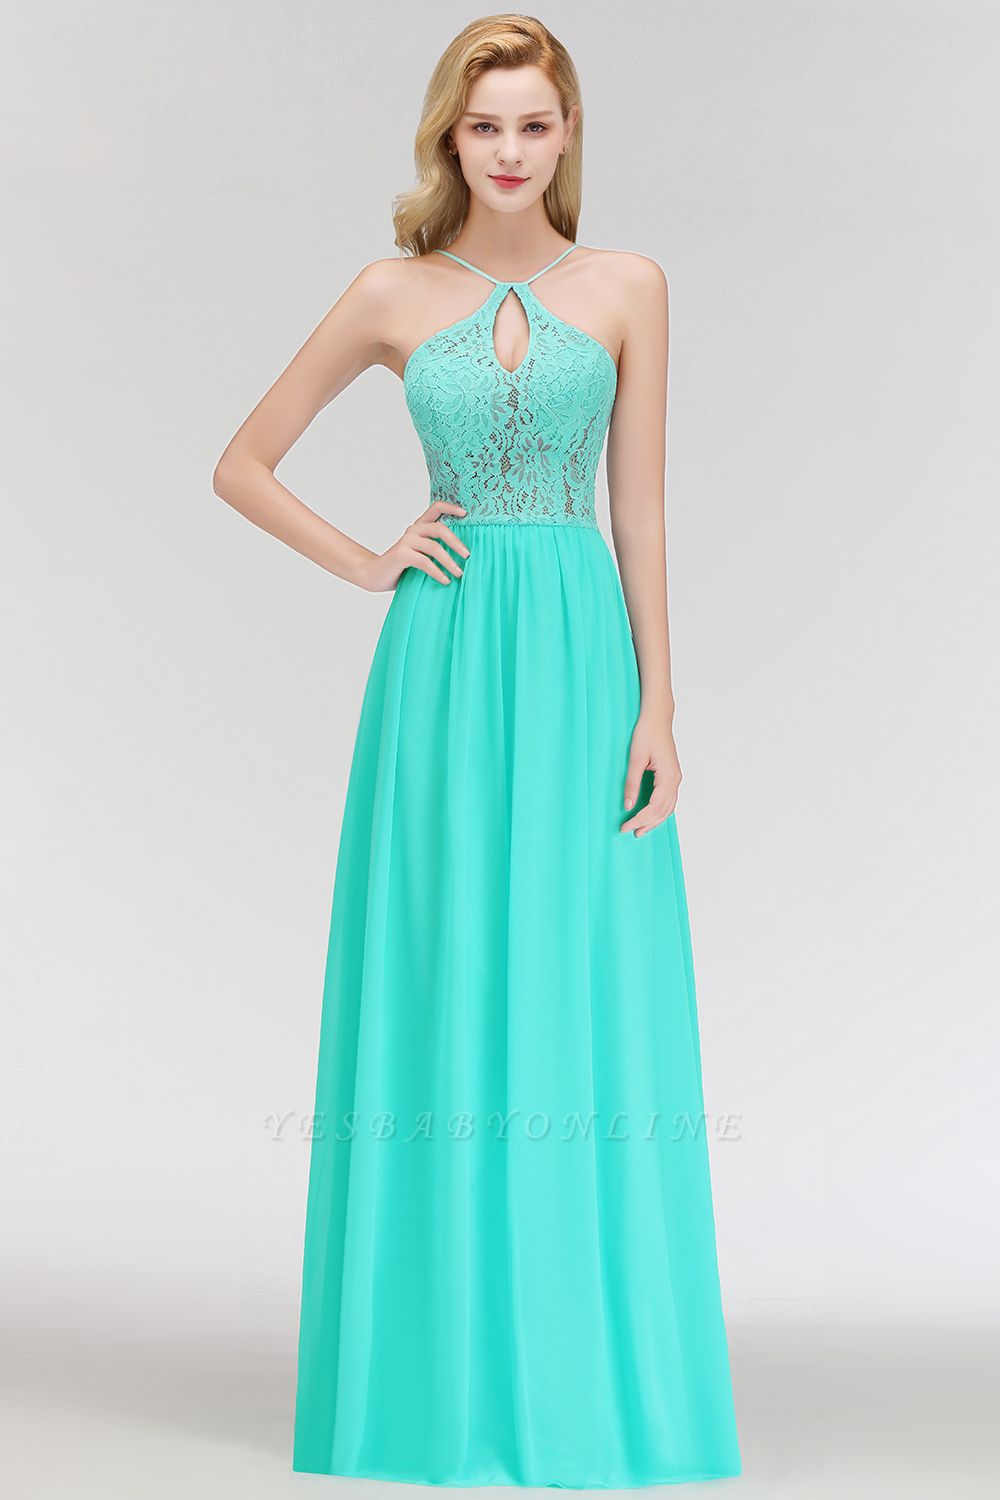 A-line Keyhole Neckline Lace Top Long Spaghetti Bridesmaid Dress In Stock